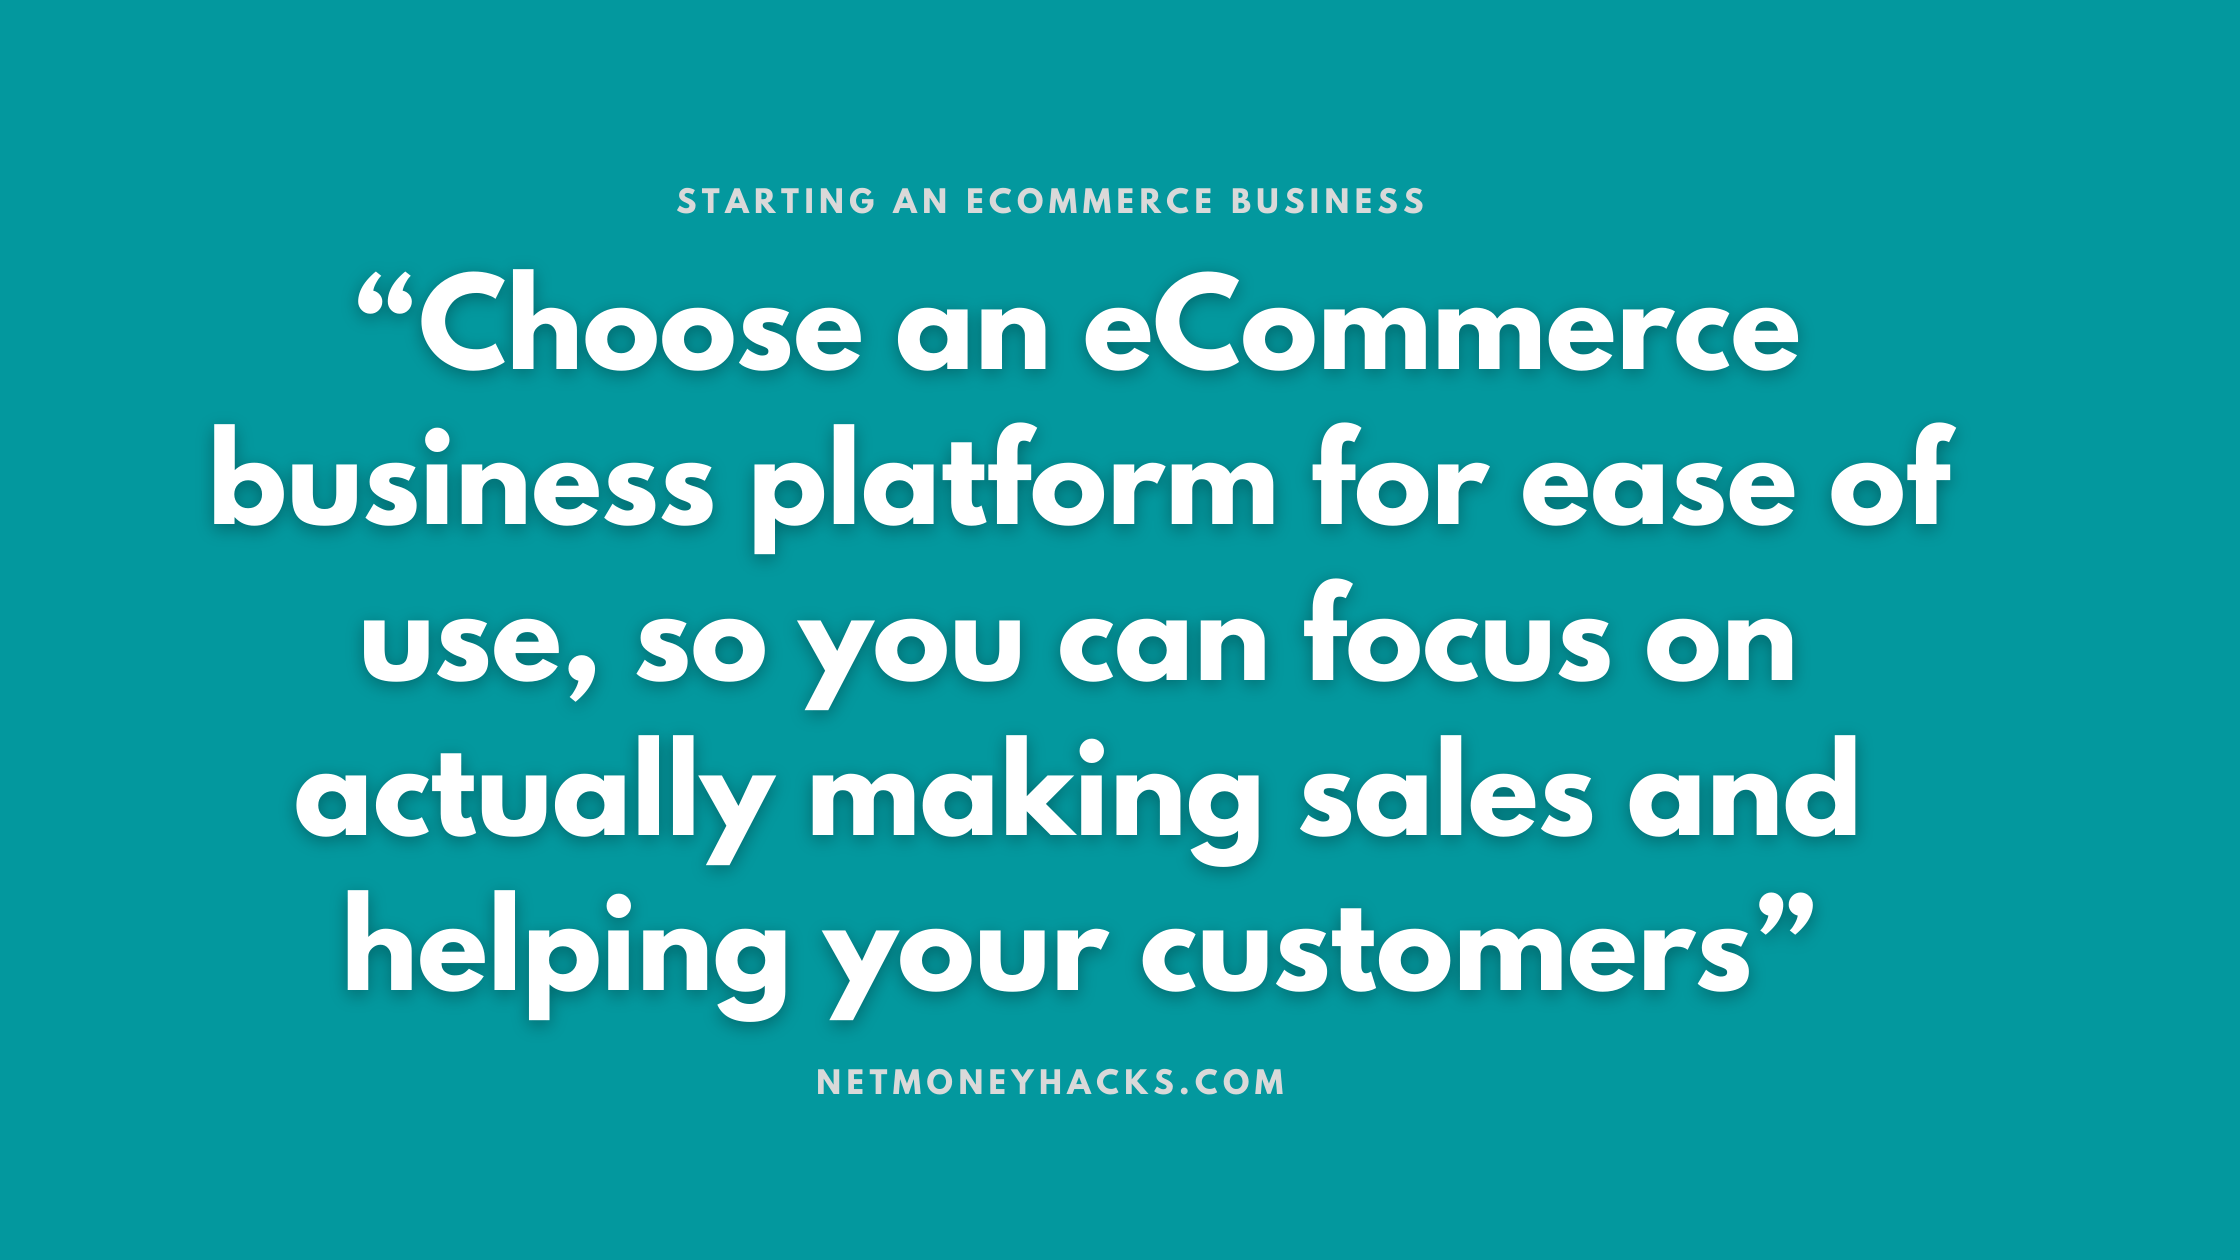 Your Complete Guide To Starting An Ecommerce Business -2020 And Beyond 4